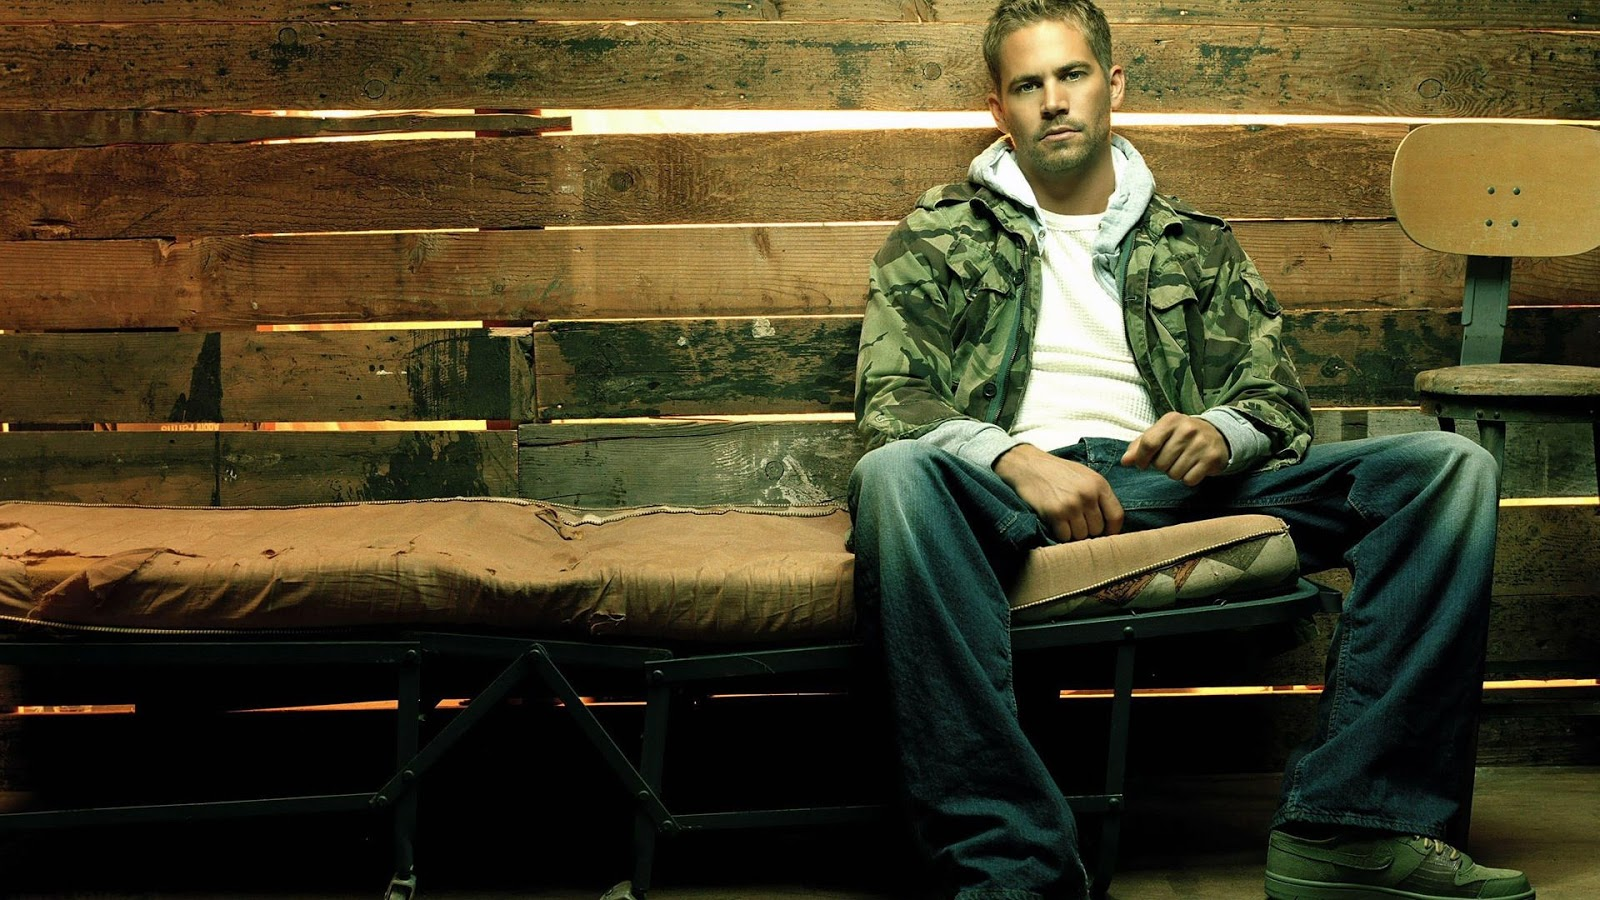 paul walker fast and furious movies actor hd wallpaper | latest hd